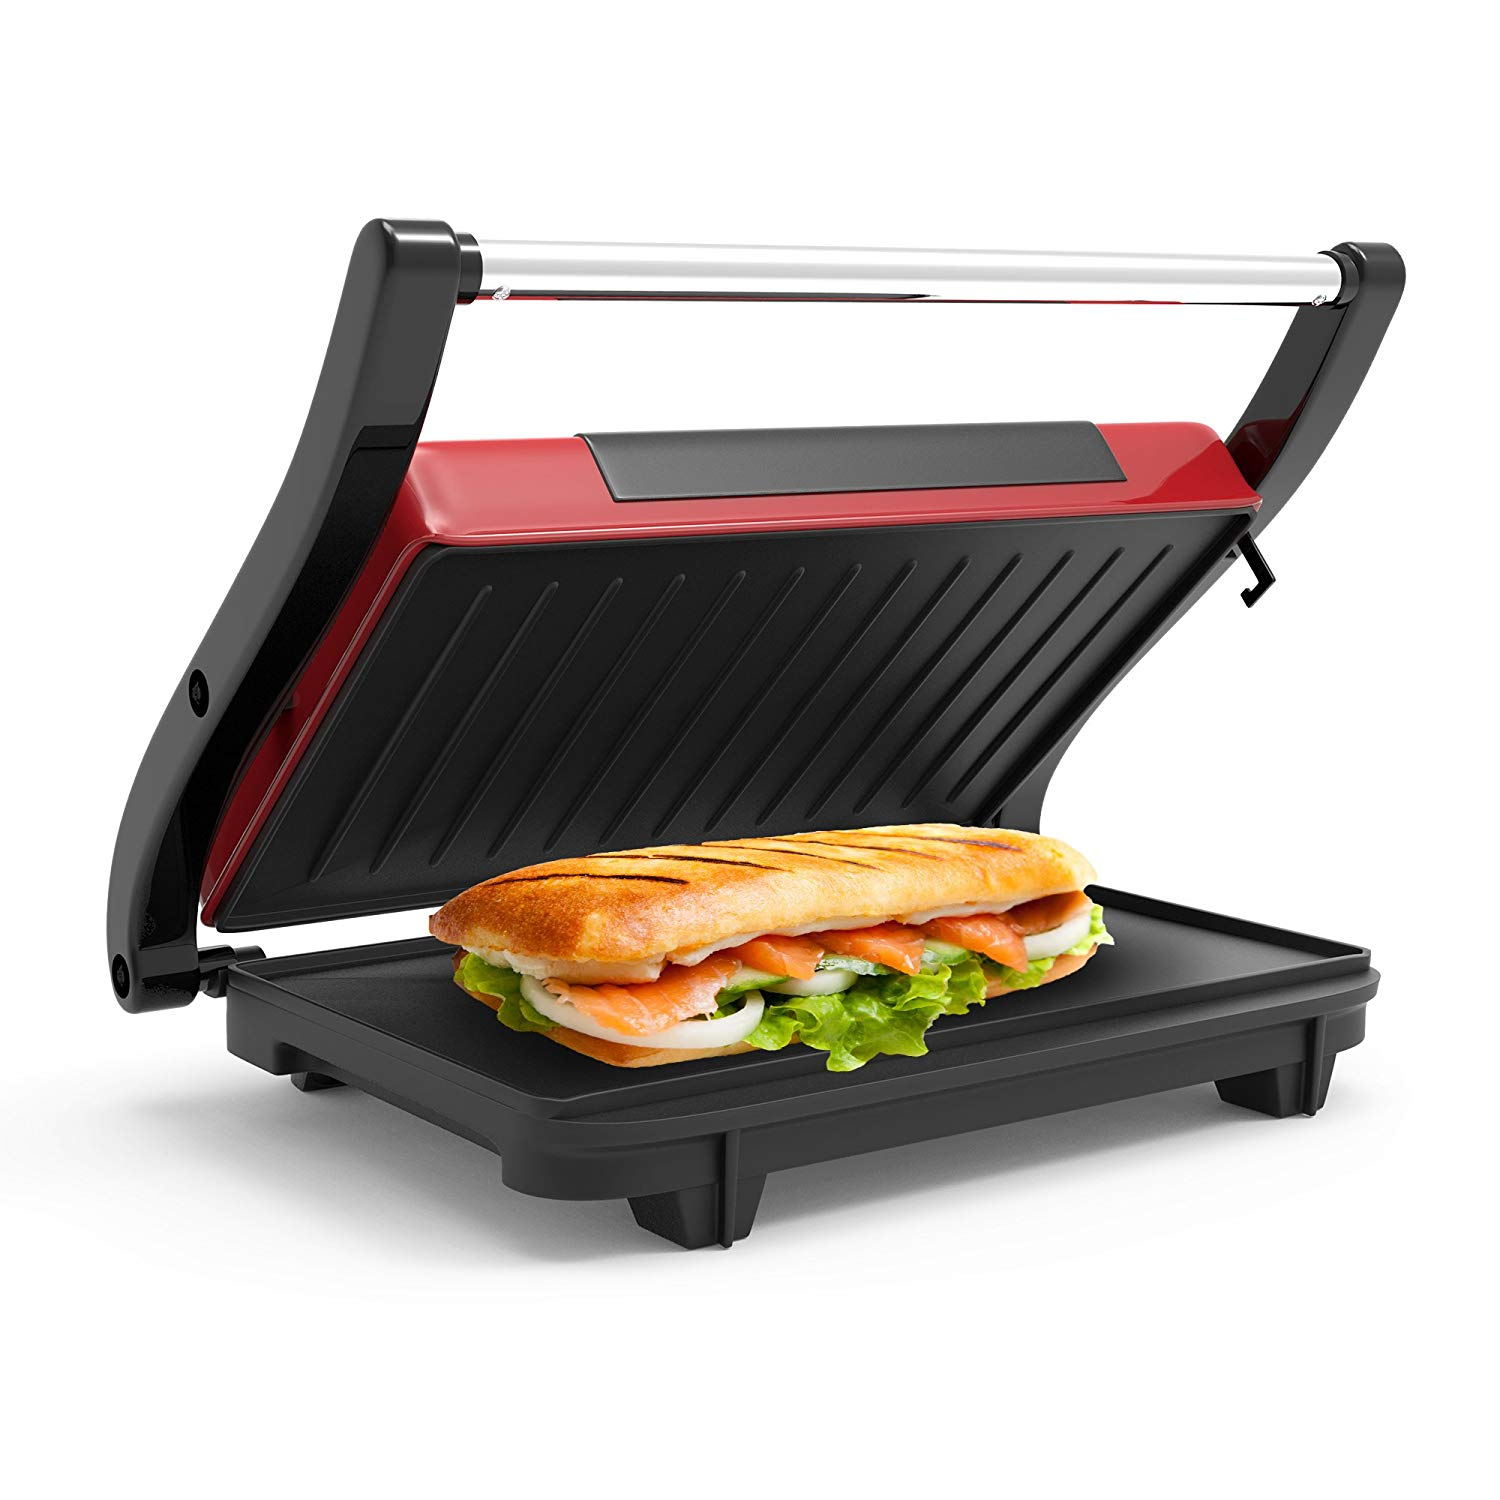 Panini Press Indoor Grill and Gourmet Sandwich Maker With Nonstick Plates (Red) by, MULTI-RECIPE HEALTHY COOKING- Healthier meals are a possibility with the advanced.., By Chef Buddy